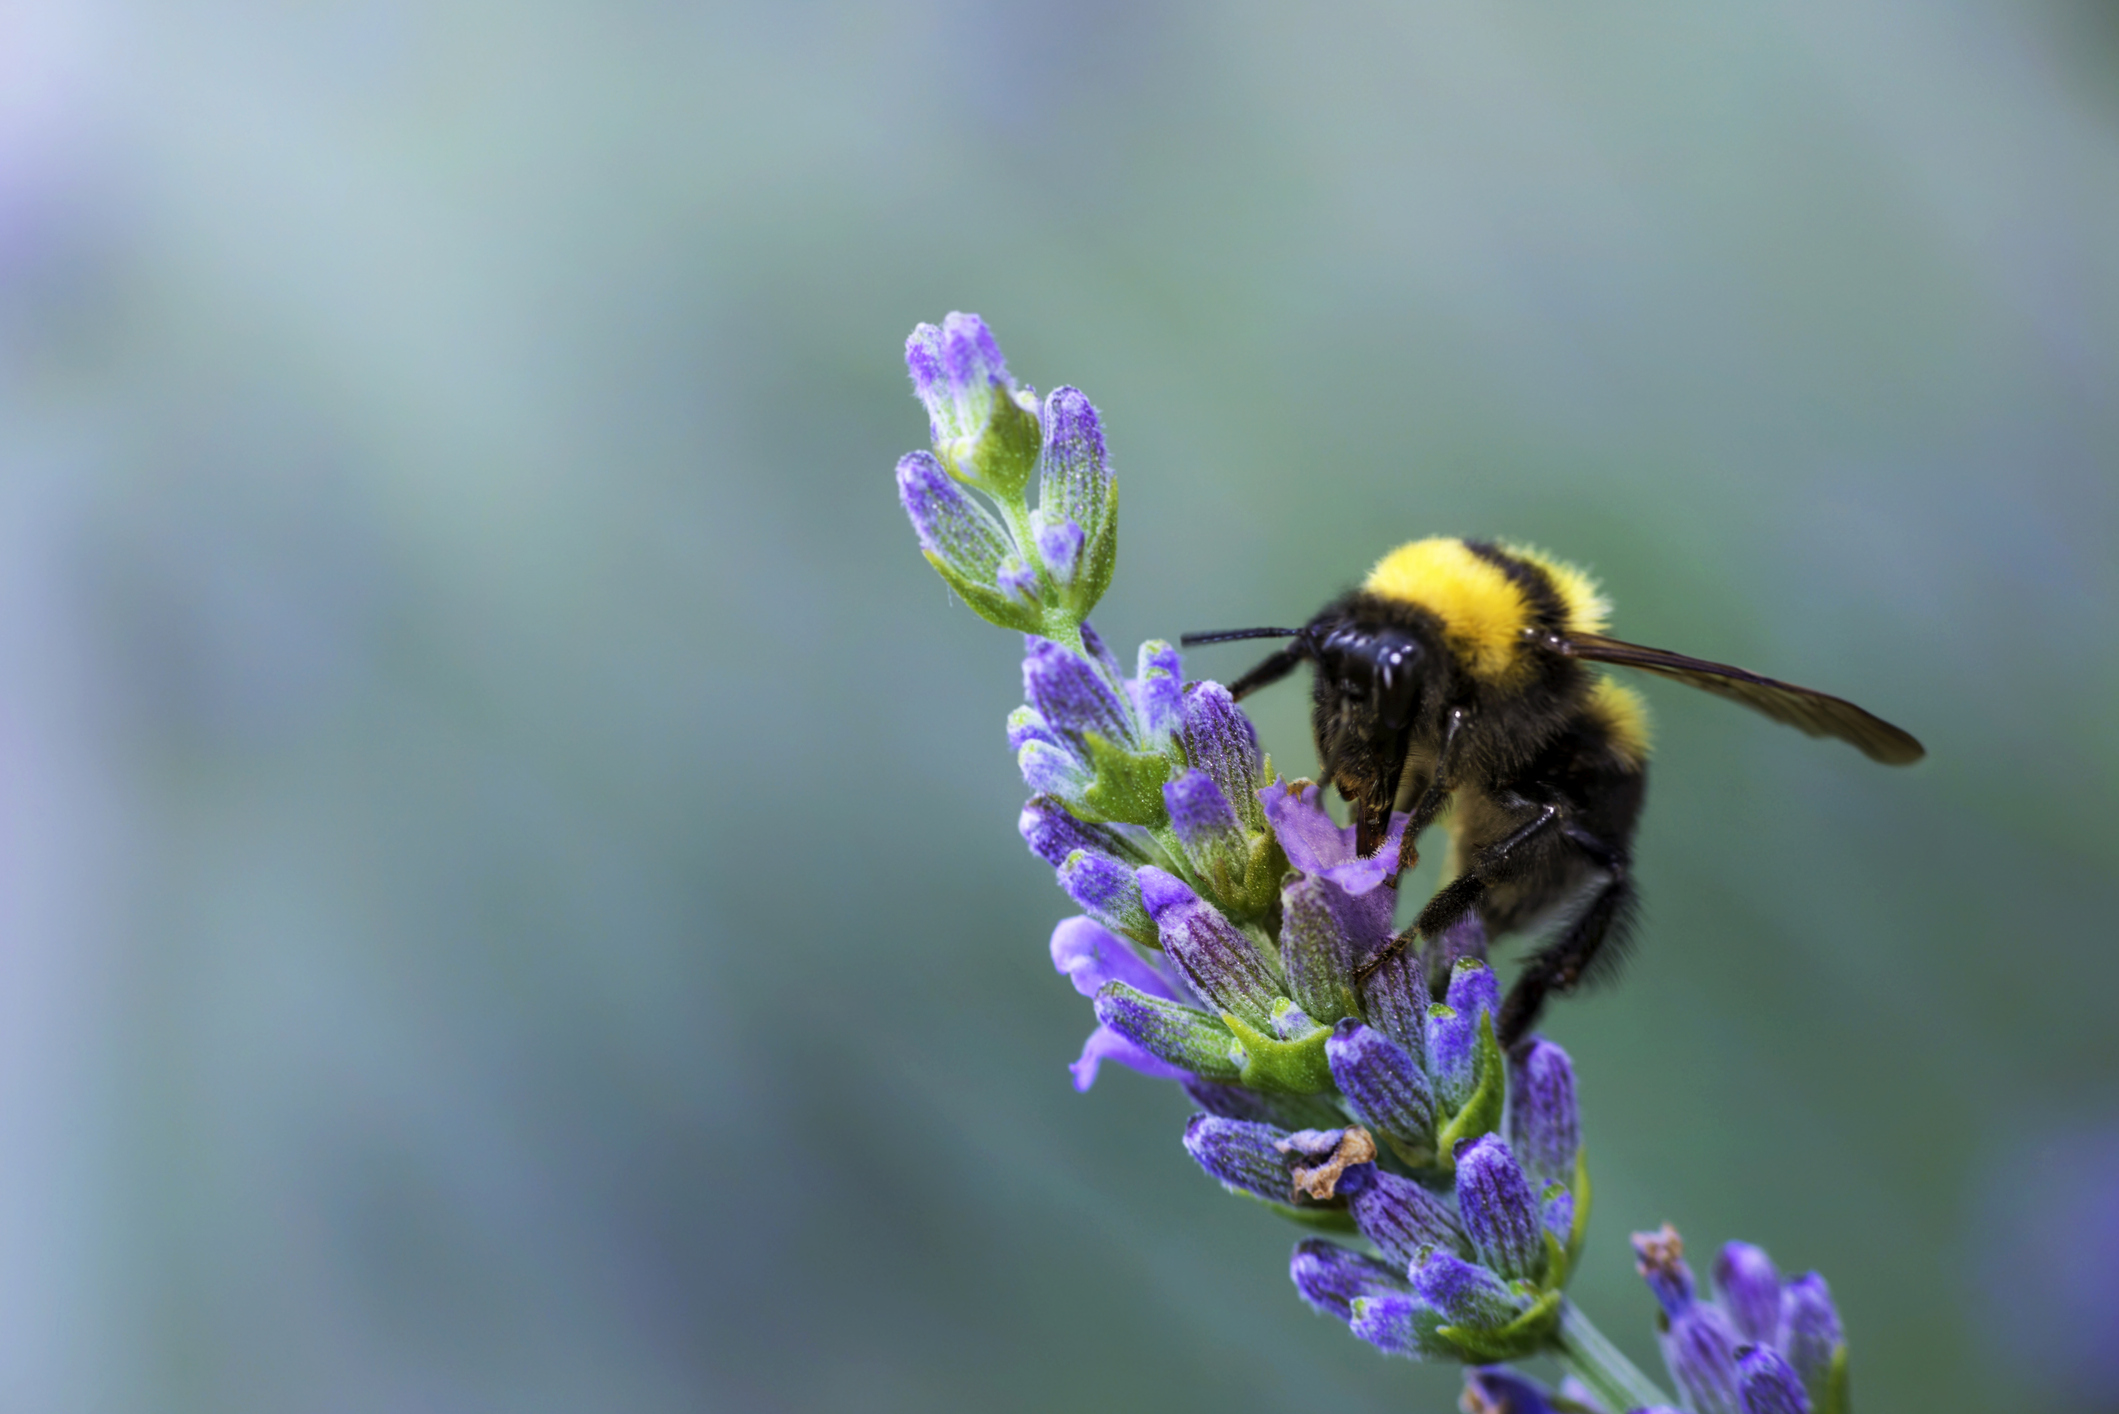 Bumble Bee Image 03